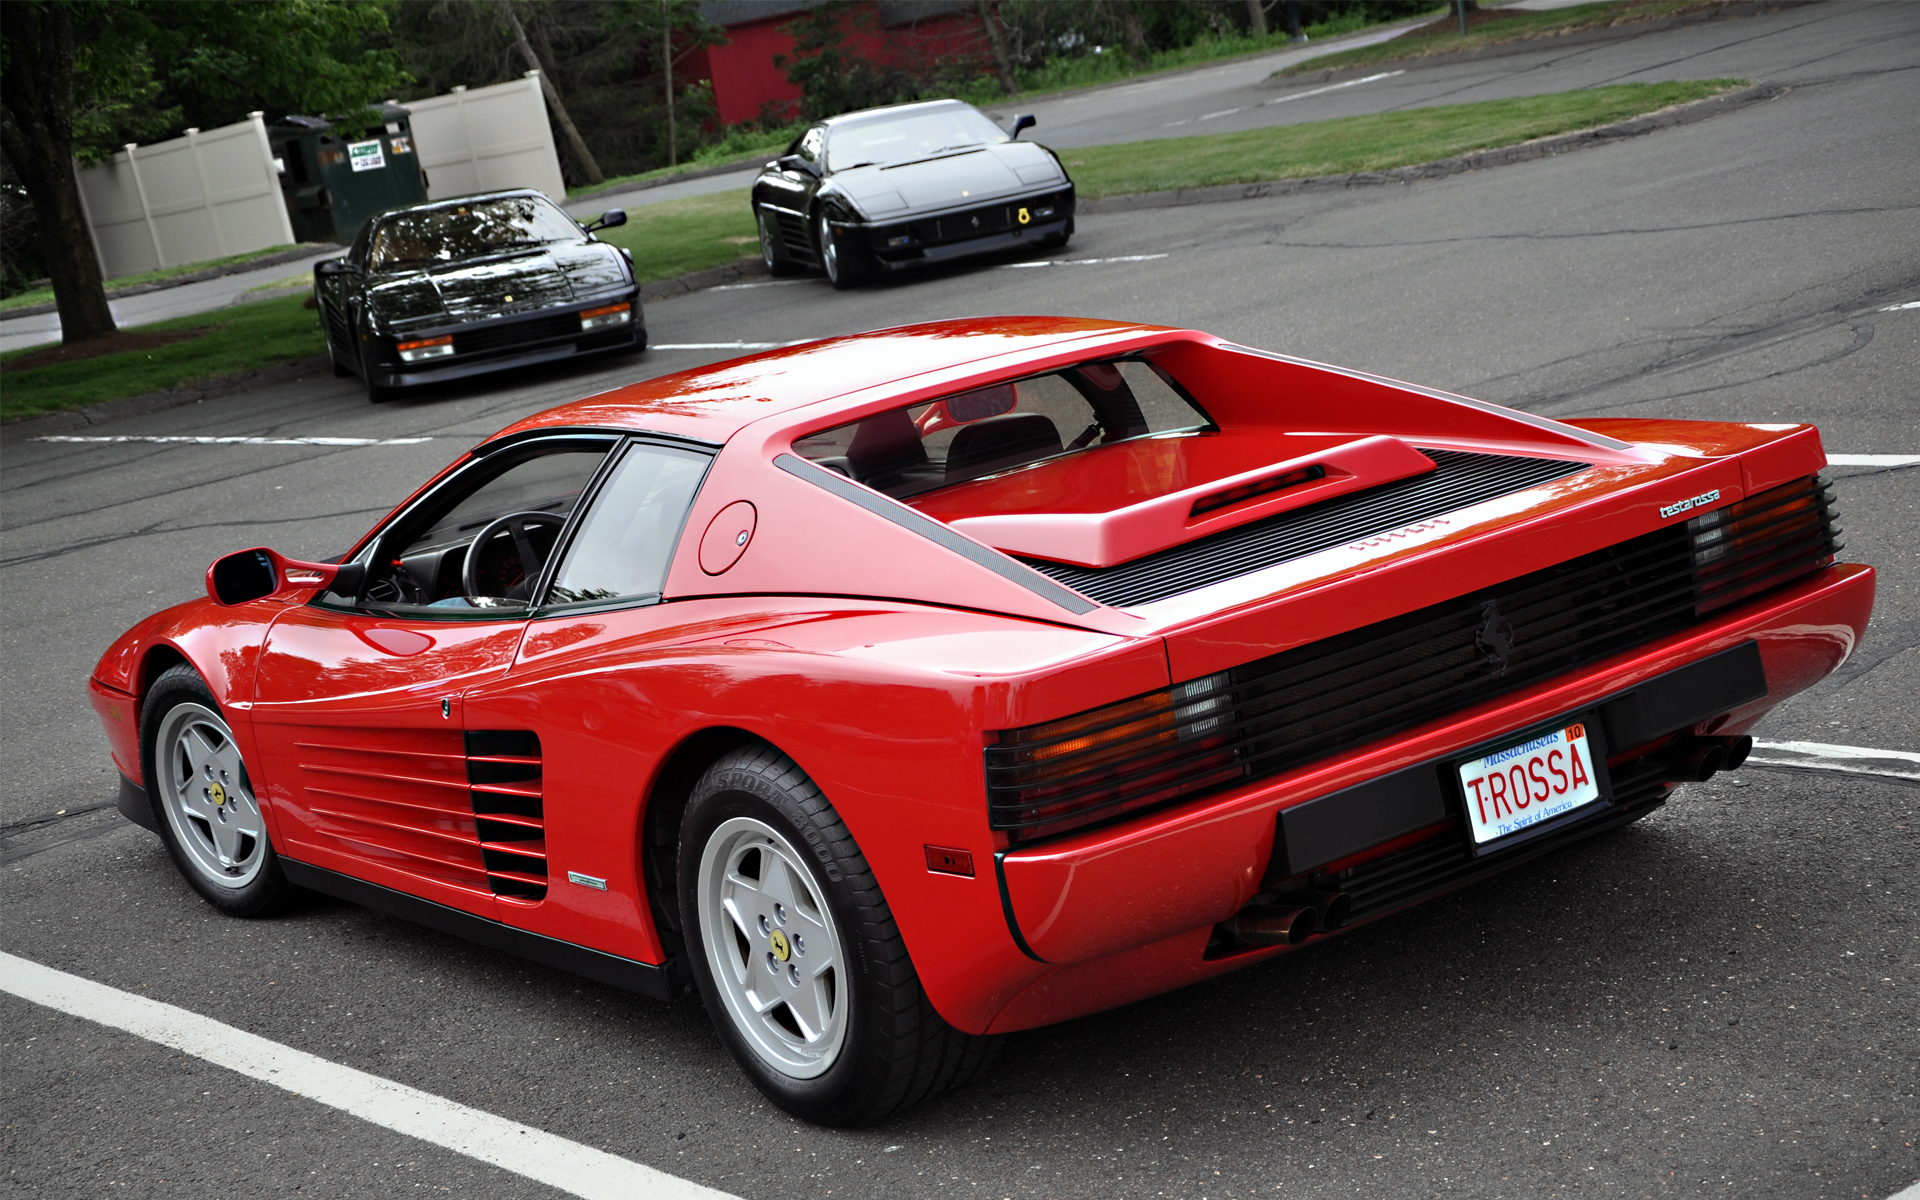 1985 ferrari testarossa wallpaper - photo #12